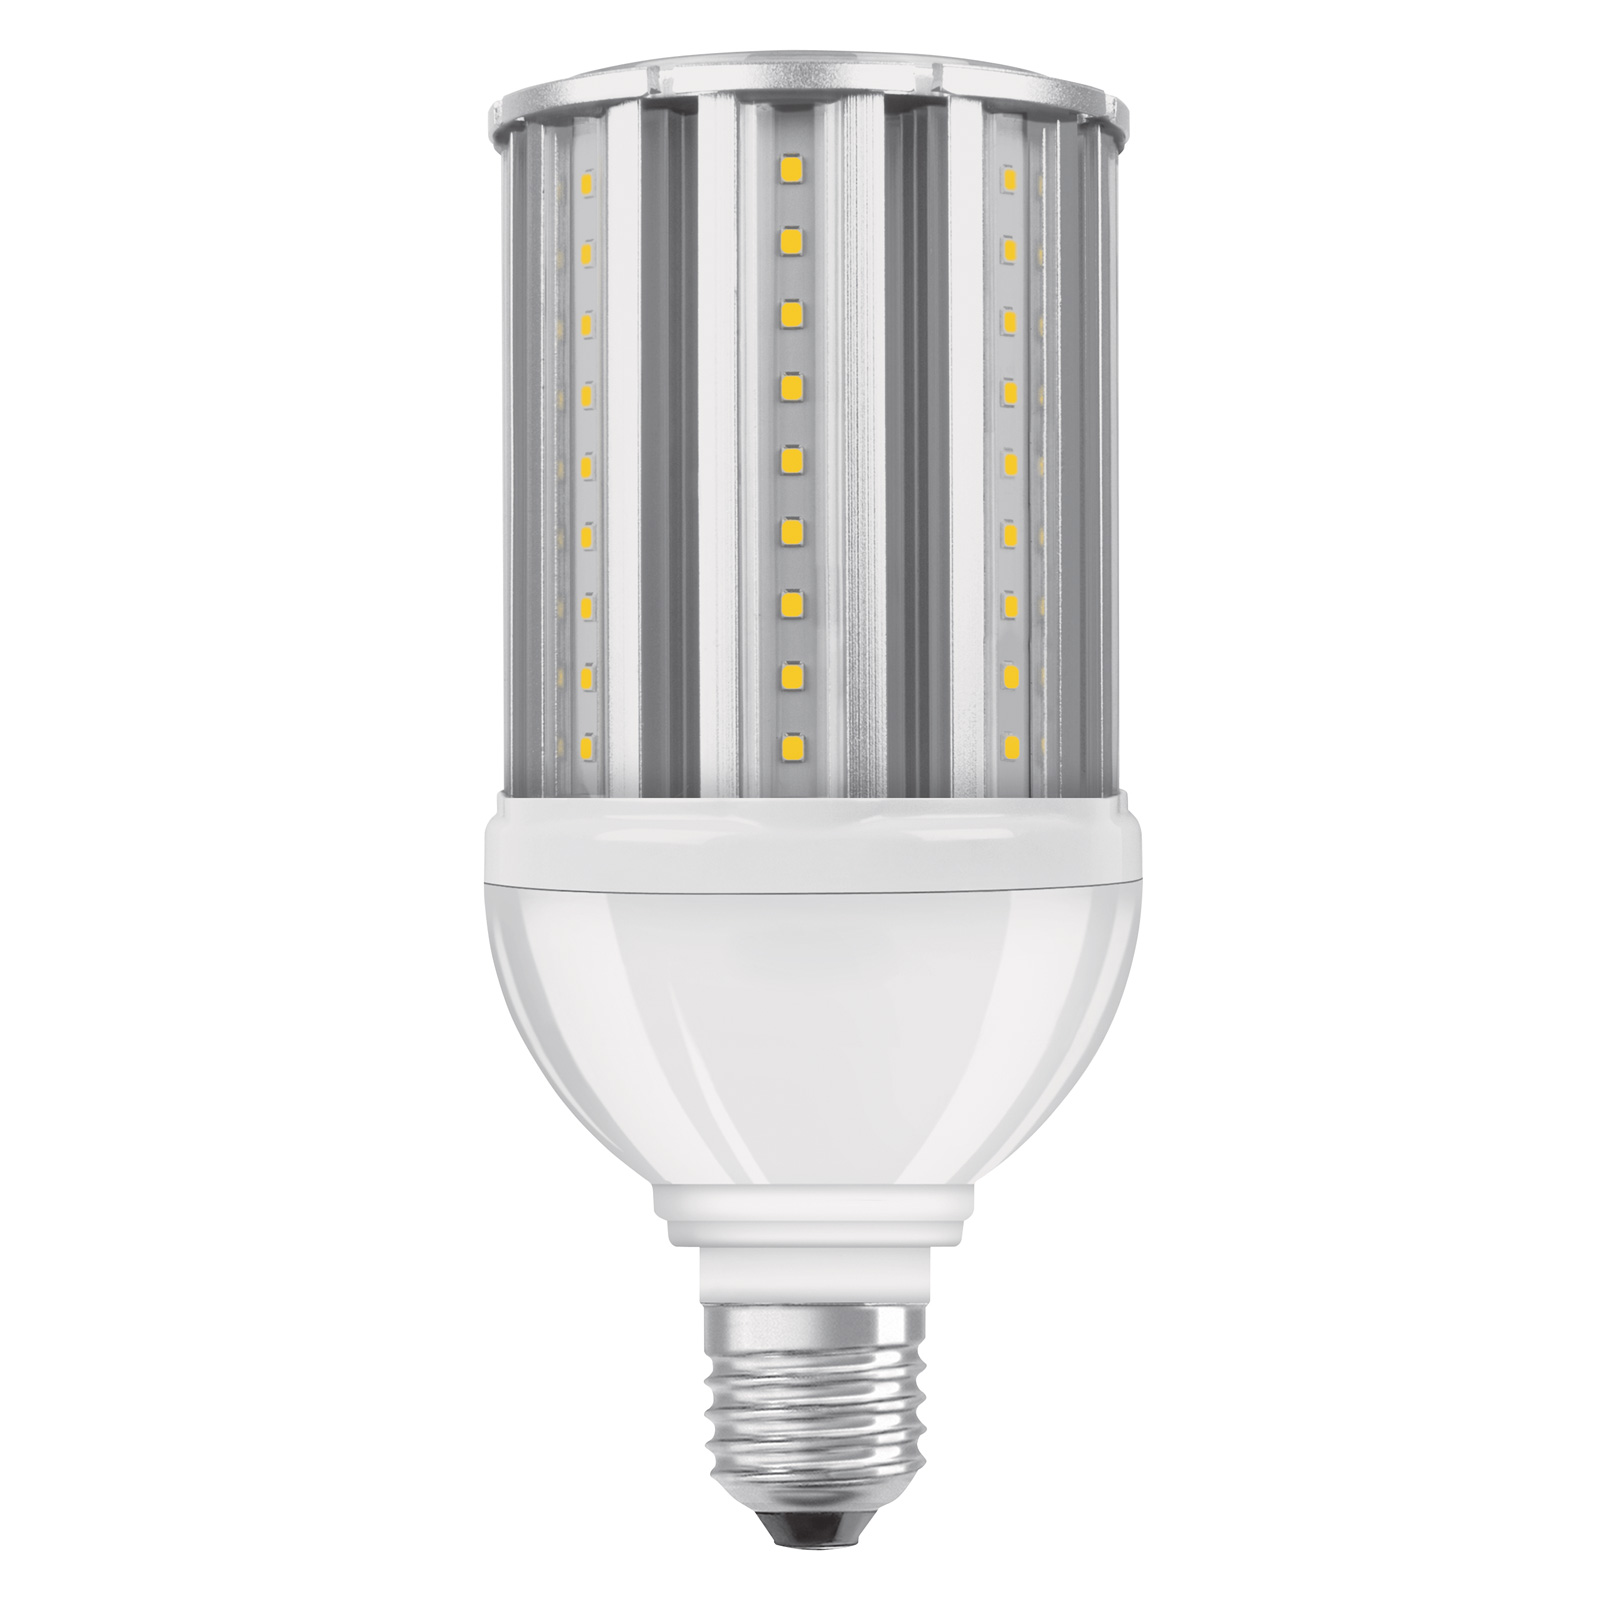 OSRAM Parathom HQL LED-Lampe E27 27 Watt 3000 Lumen neutral white ...